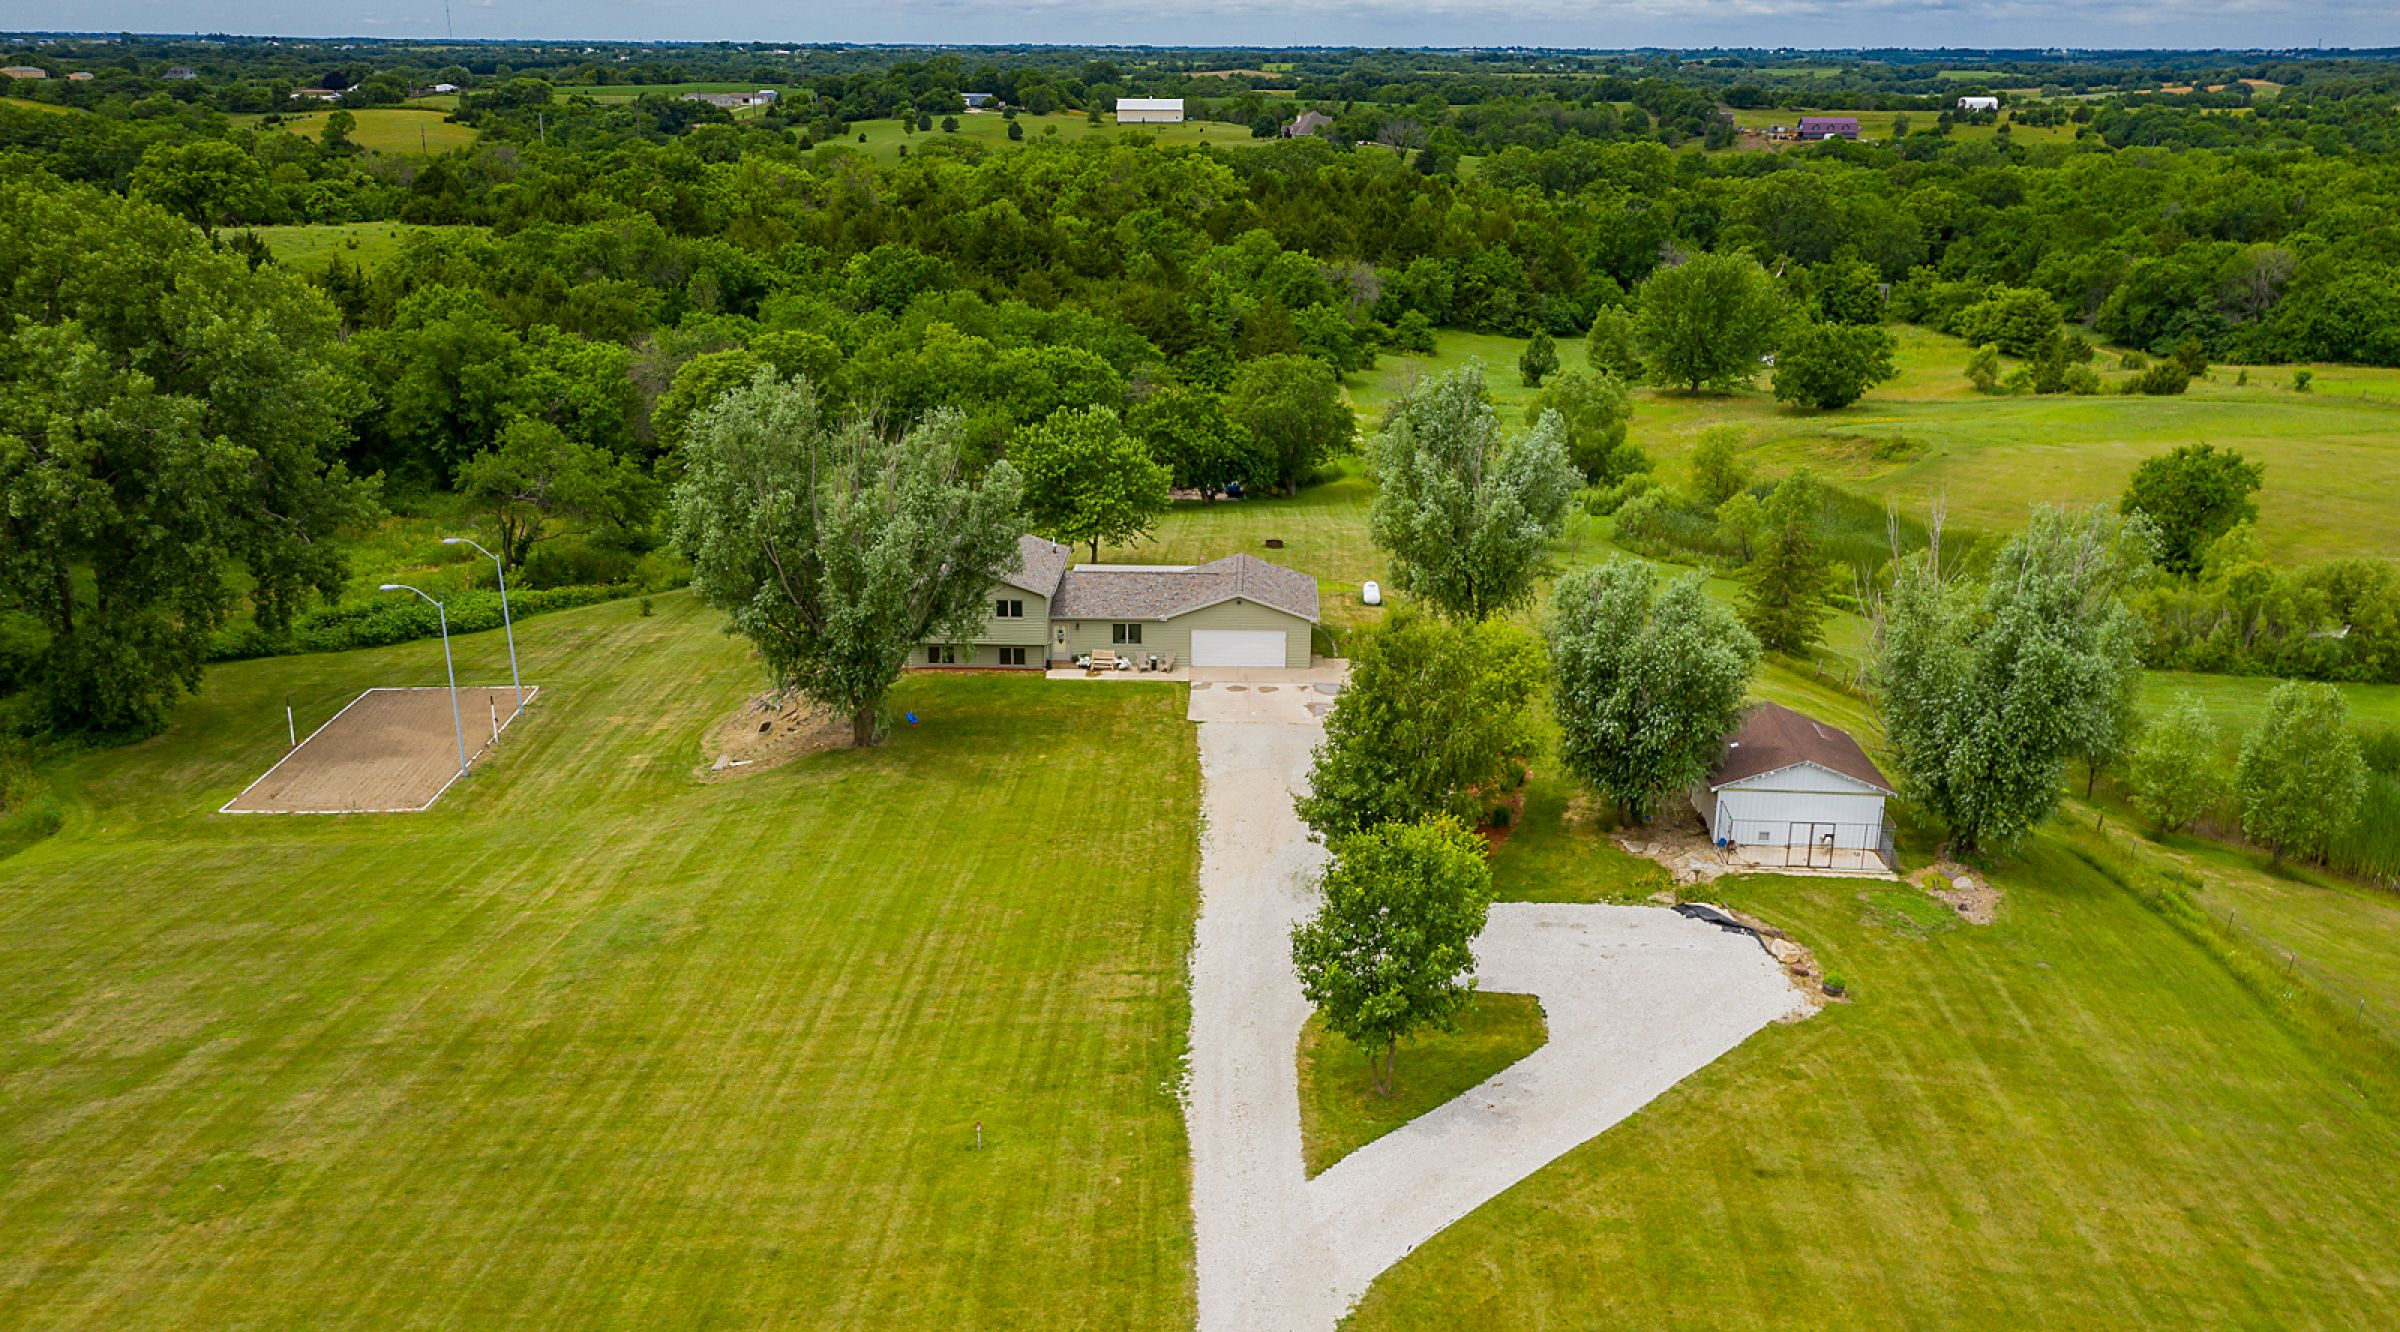 residential-warren-county-iowa-13-acres-listing-number-15056-9-2020-07-02-015921.jpg